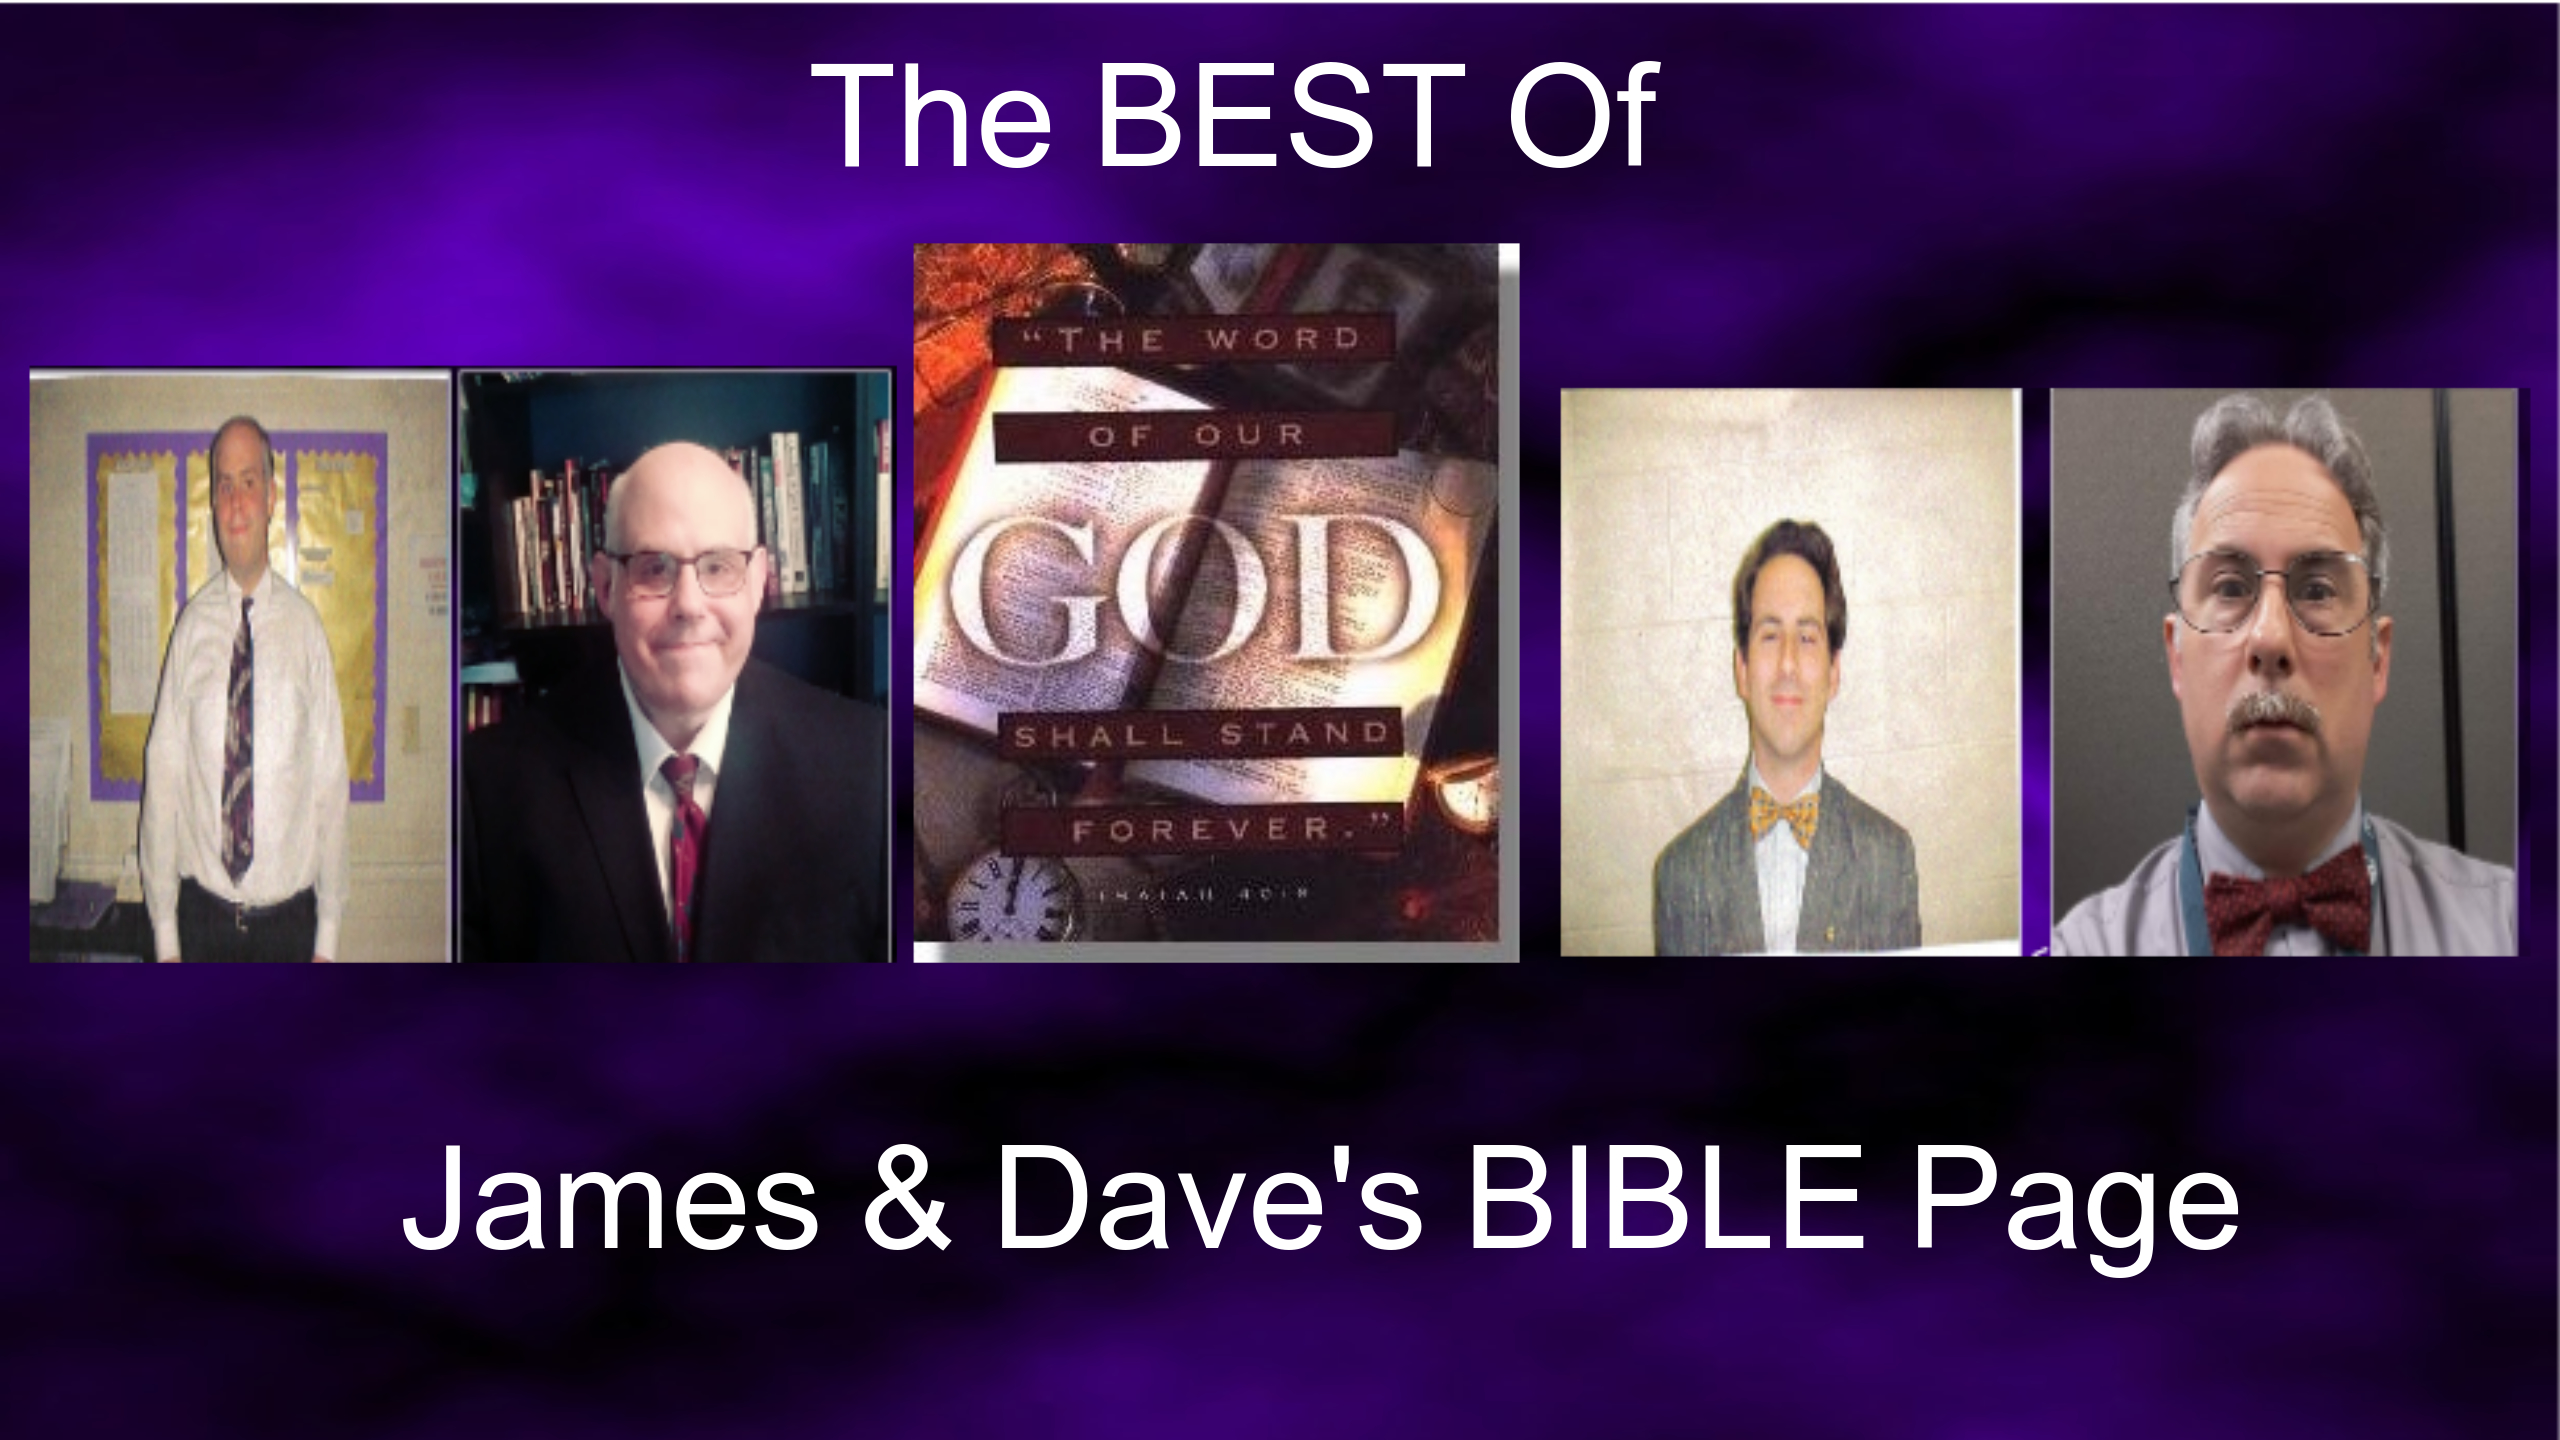 The BEST of James $ Dave's Bible Page!